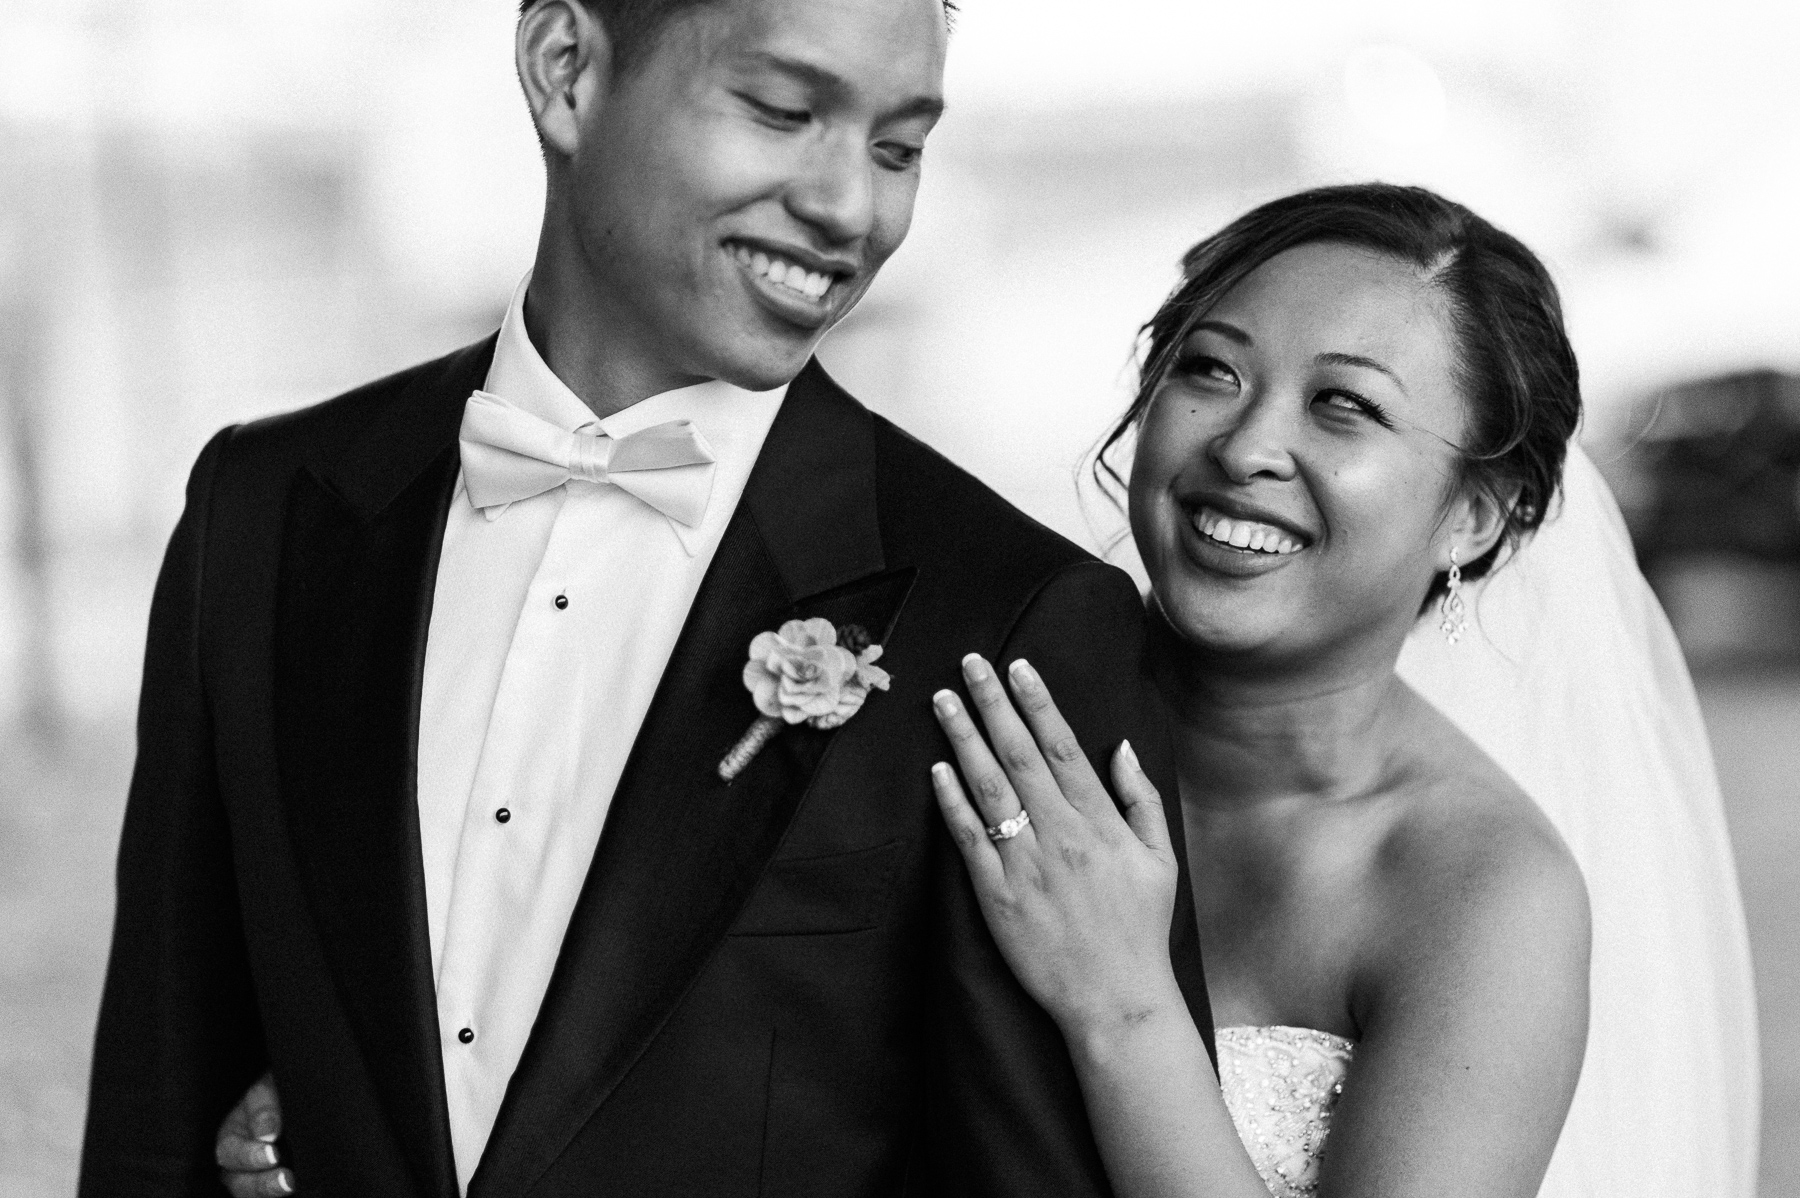 0019_sharon&vincent-Seattle_Wedding_Brandon_Patoc_Photographer.JPG